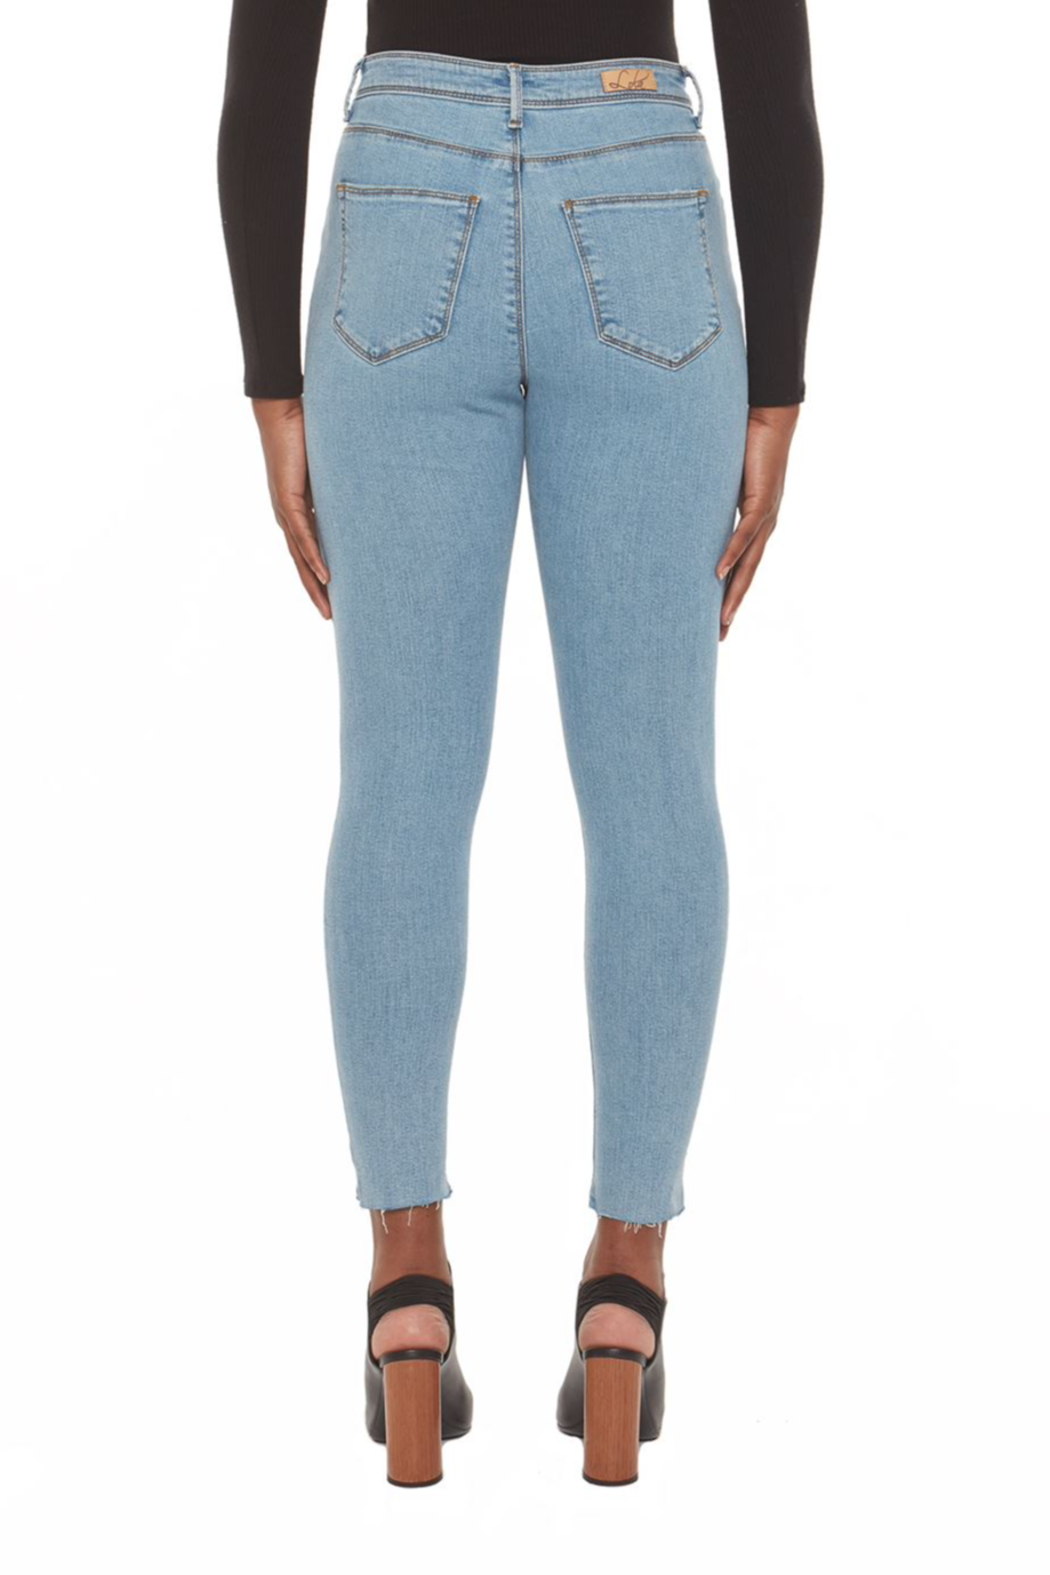 Lola Jeans Alexa Skinny High Rise Jeans - Side Cropped Image